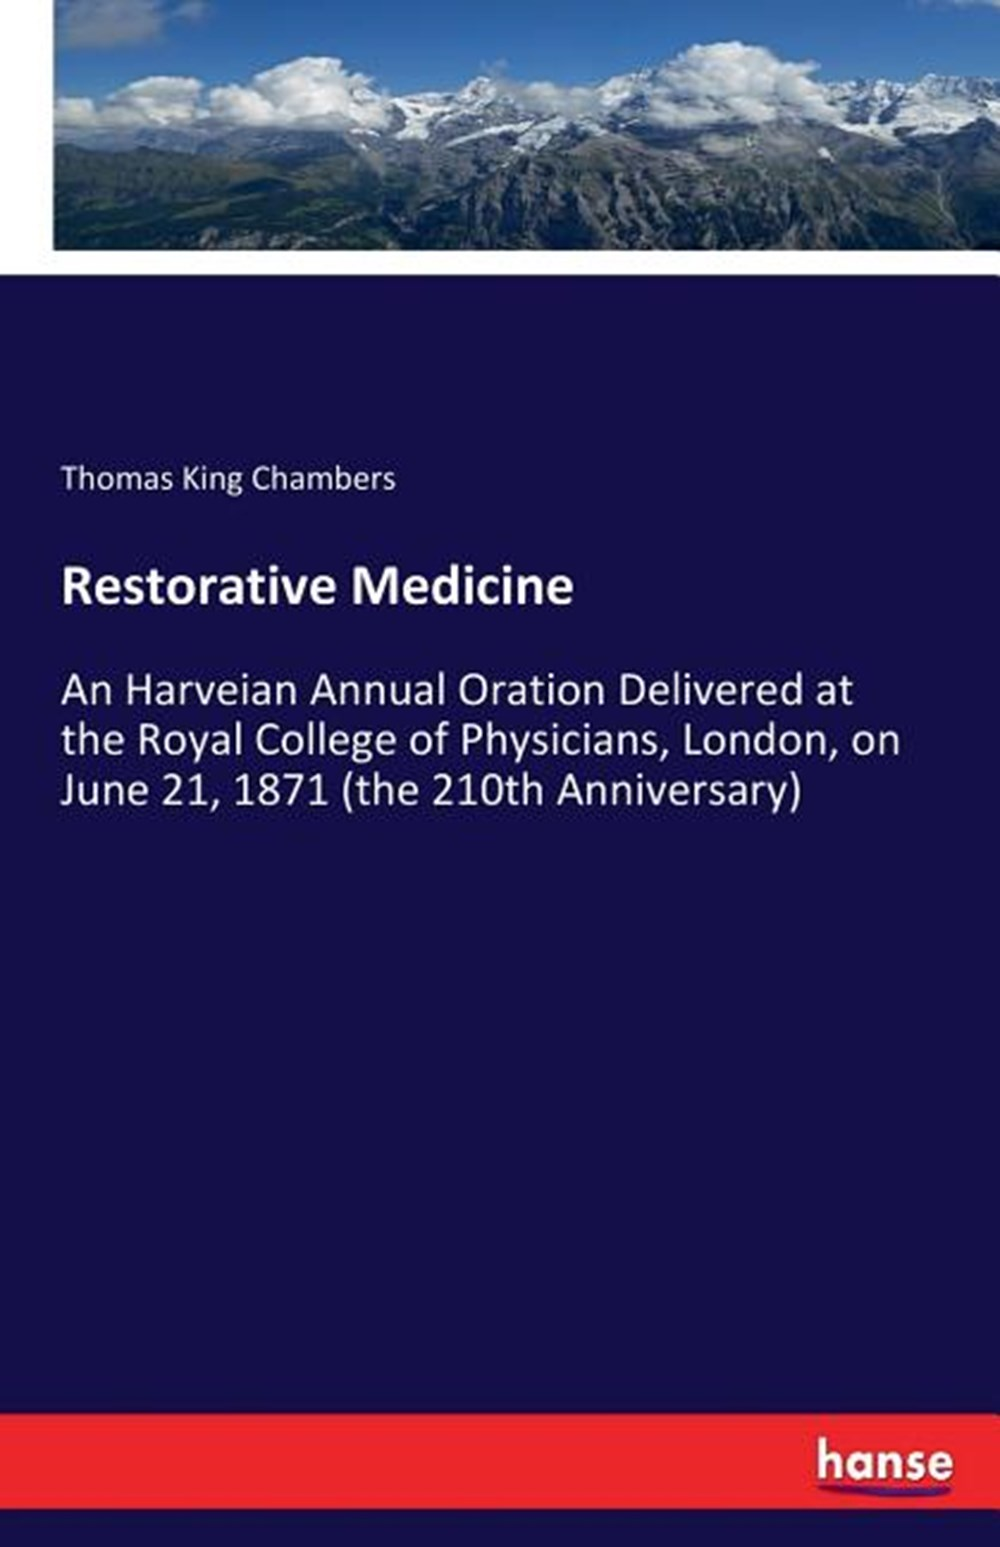 Restorative Medicine An Harveian Annual Oration Delivered at the Royal College of Physicians, London